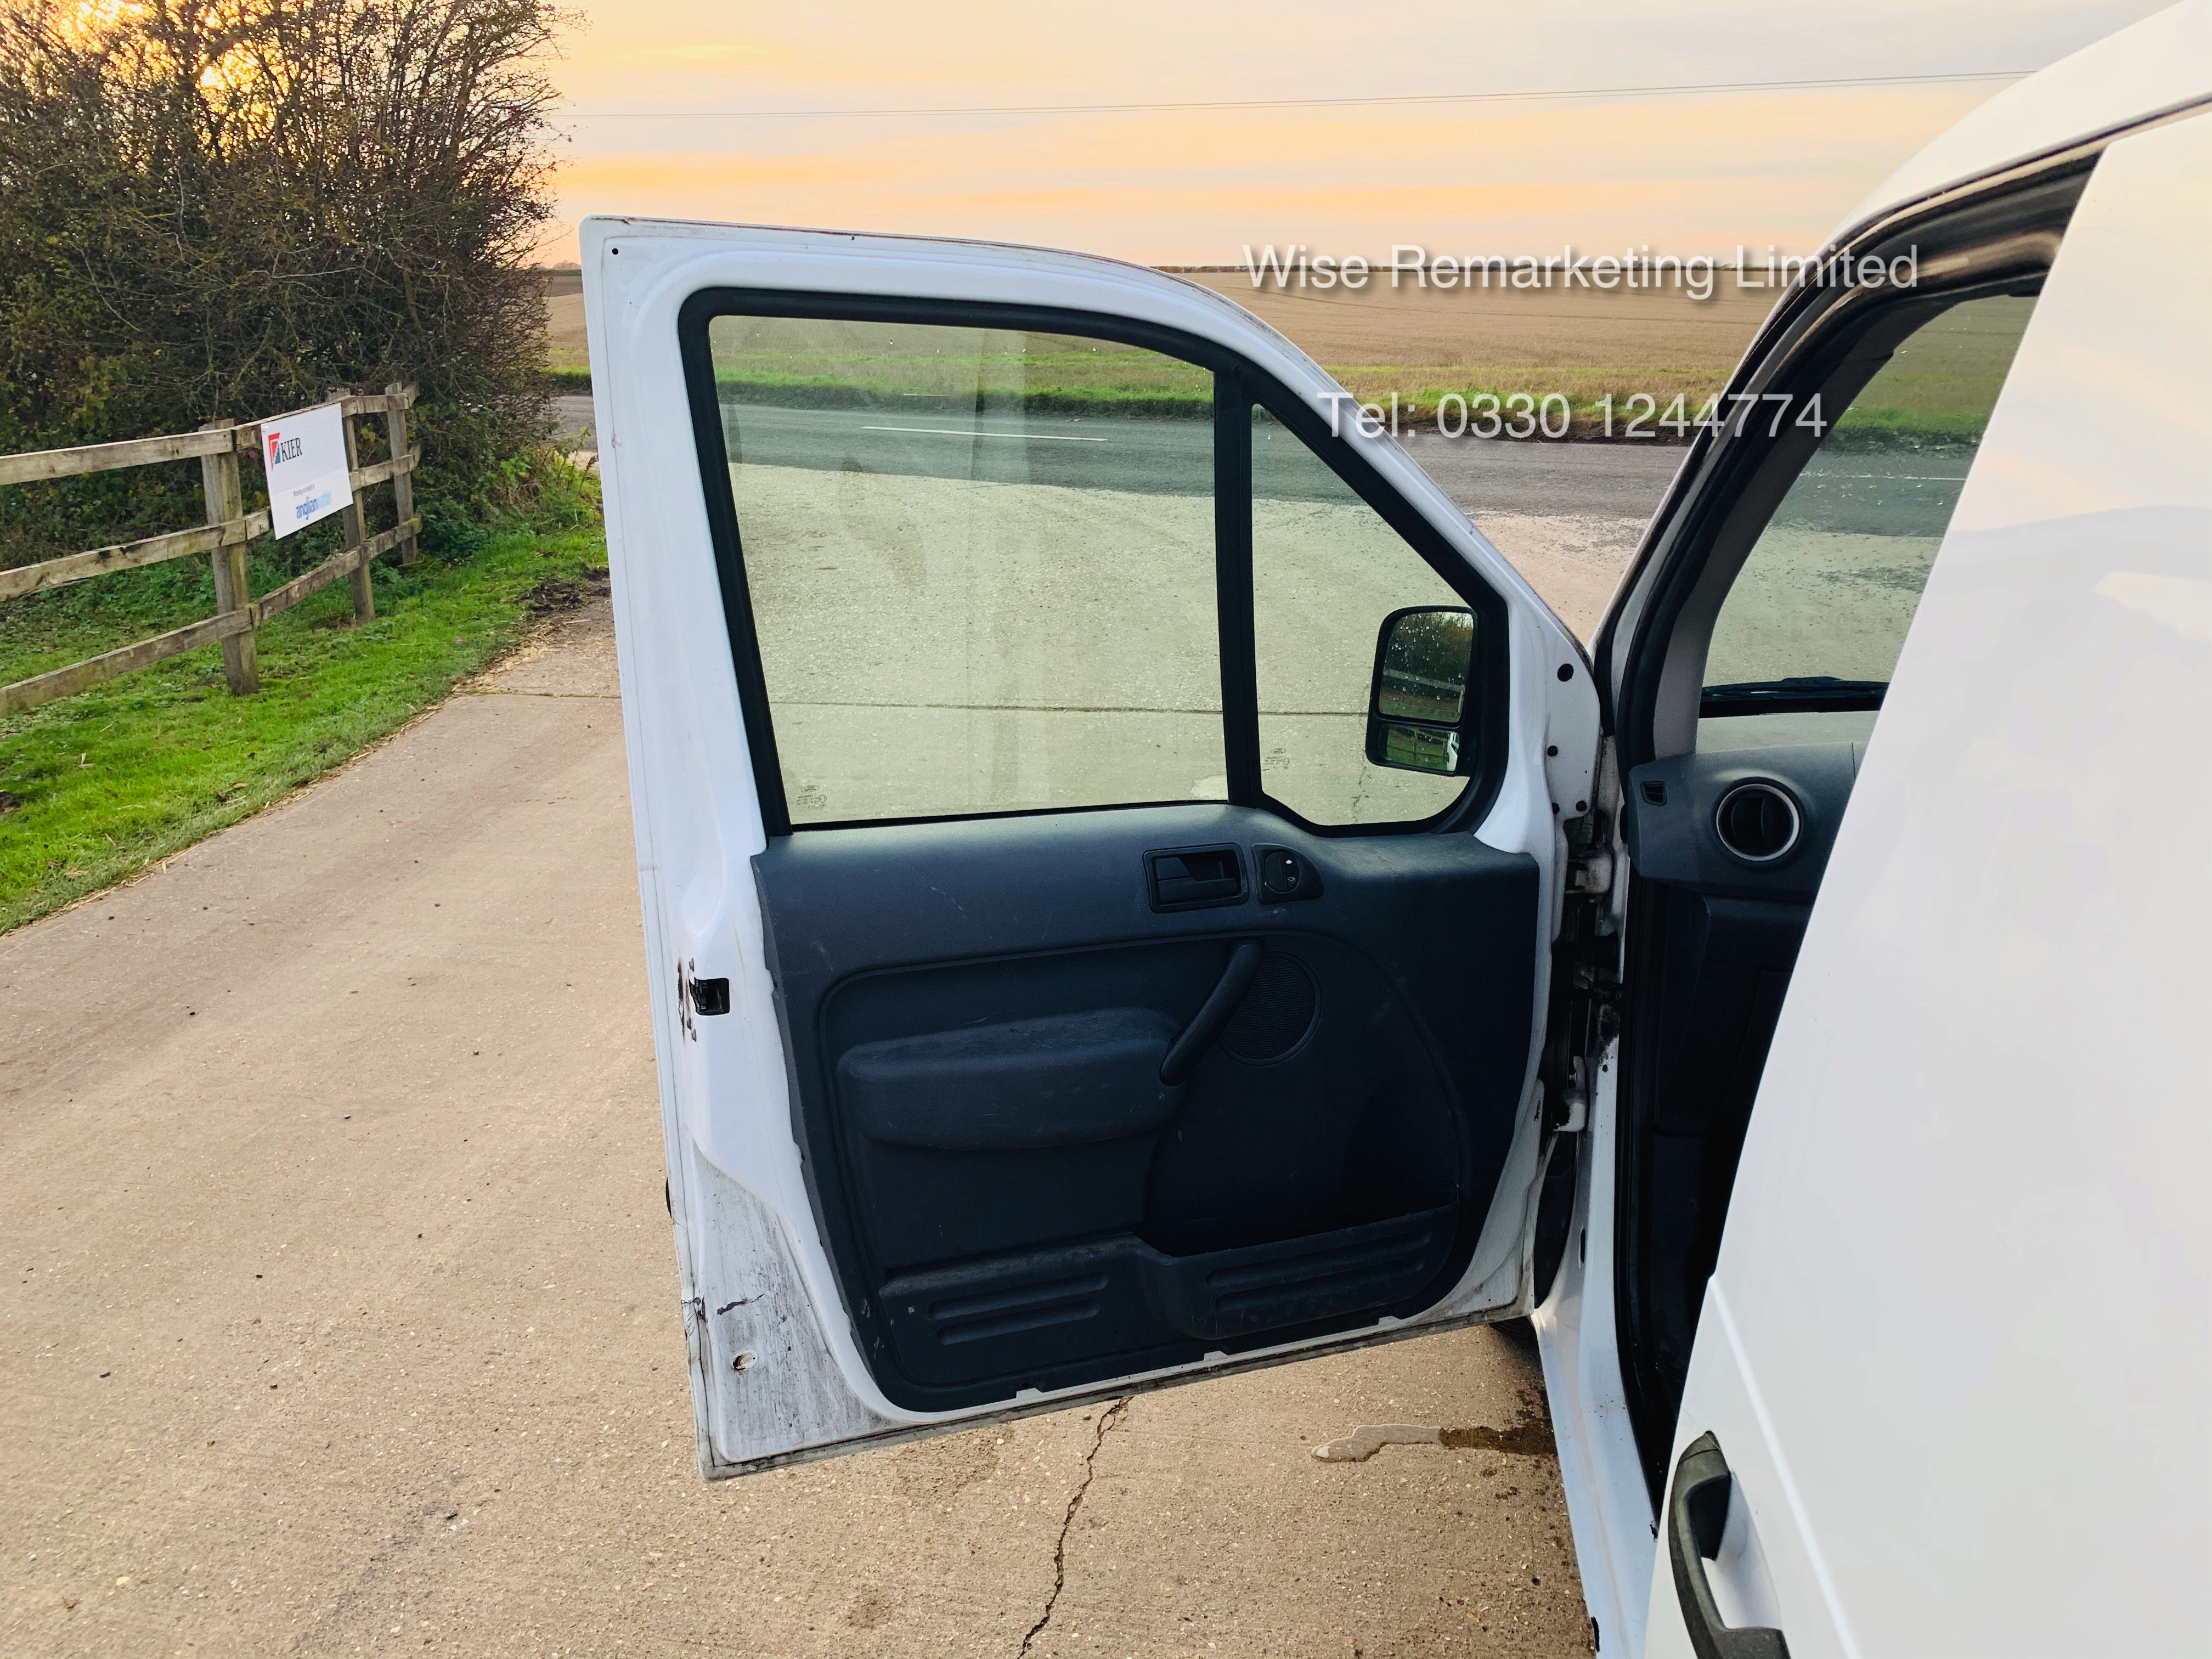 Ford Transit Connect T200 1.8 - 2010 Model - Side Loading Door - Ply Lined - Image 12 of 19